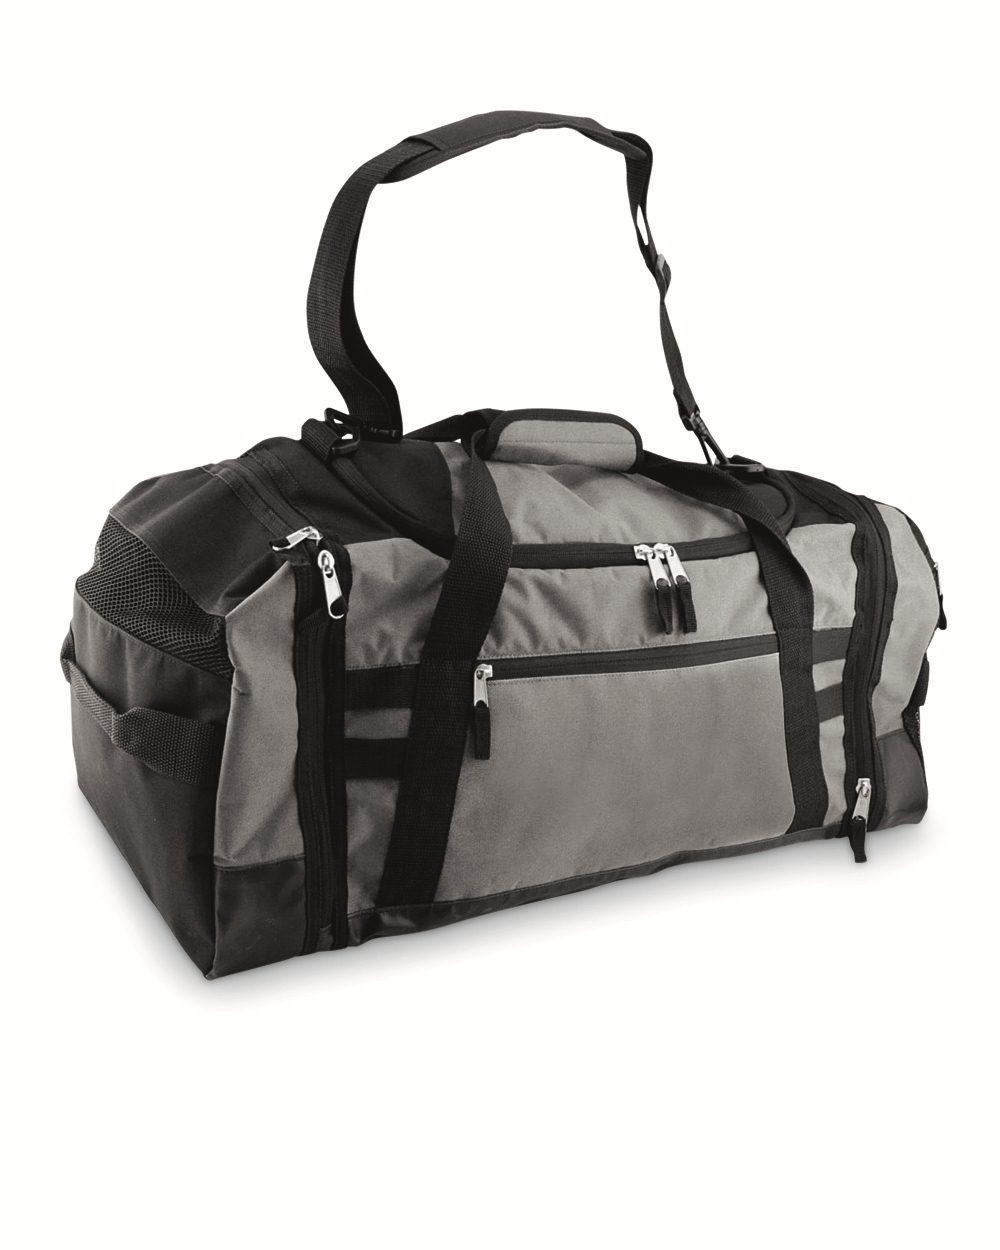 Valubag 23 Inch Sports Duffel Bag - VB0918